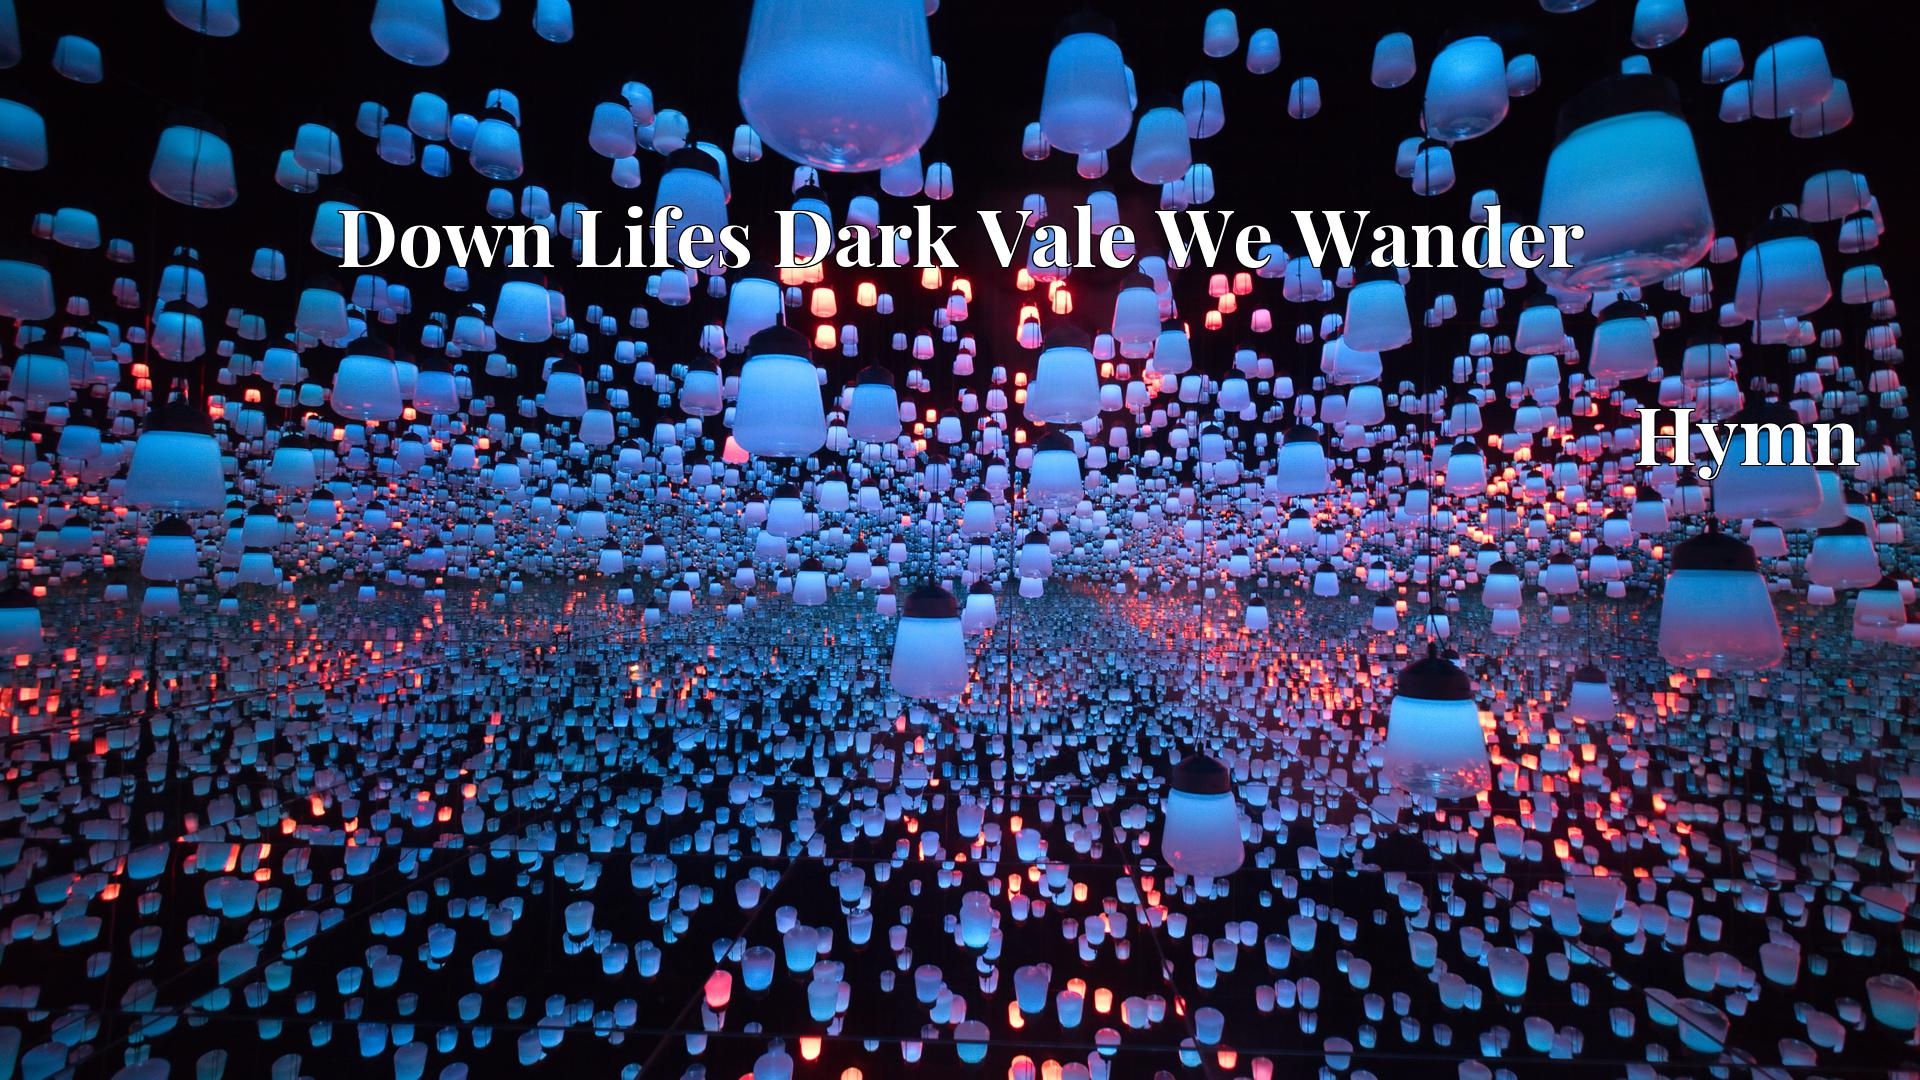 Down Lifes Dark Vale We Wander - Hymn